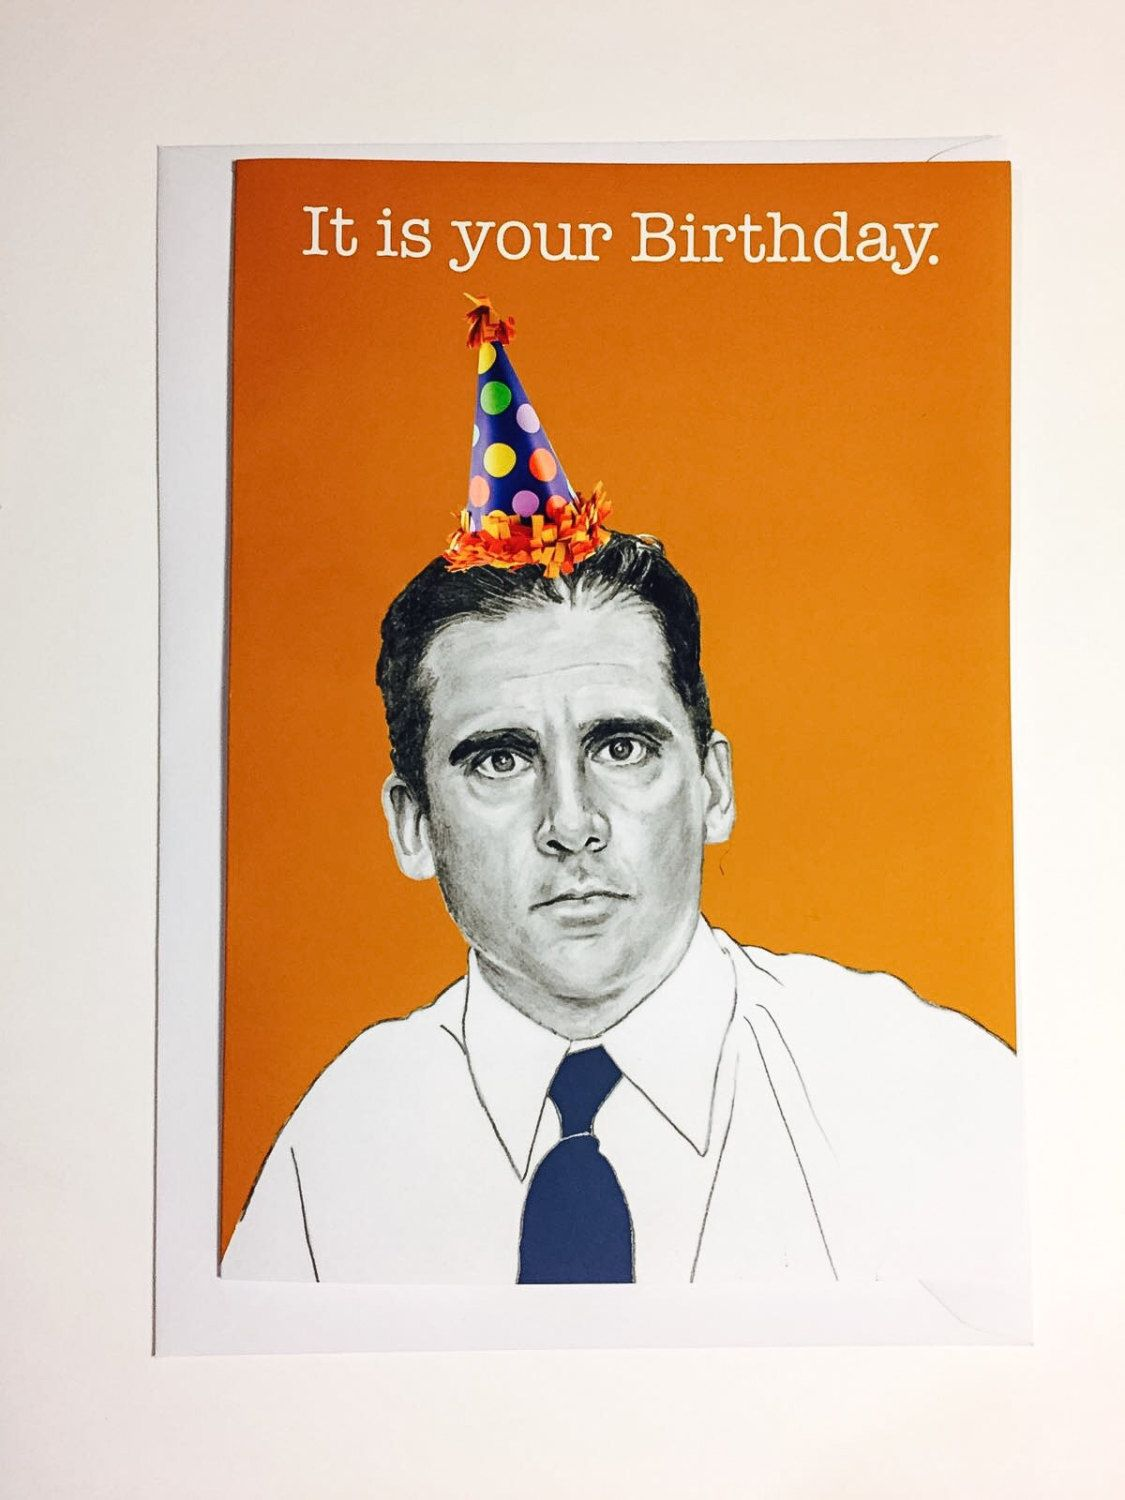 Michael scott birthday card it is your birthday because who michael scott birthday card it is your birthday because who doesnt want a birthday card of michael scott on their mantelpiece this year bookmarktalkfo Gallery